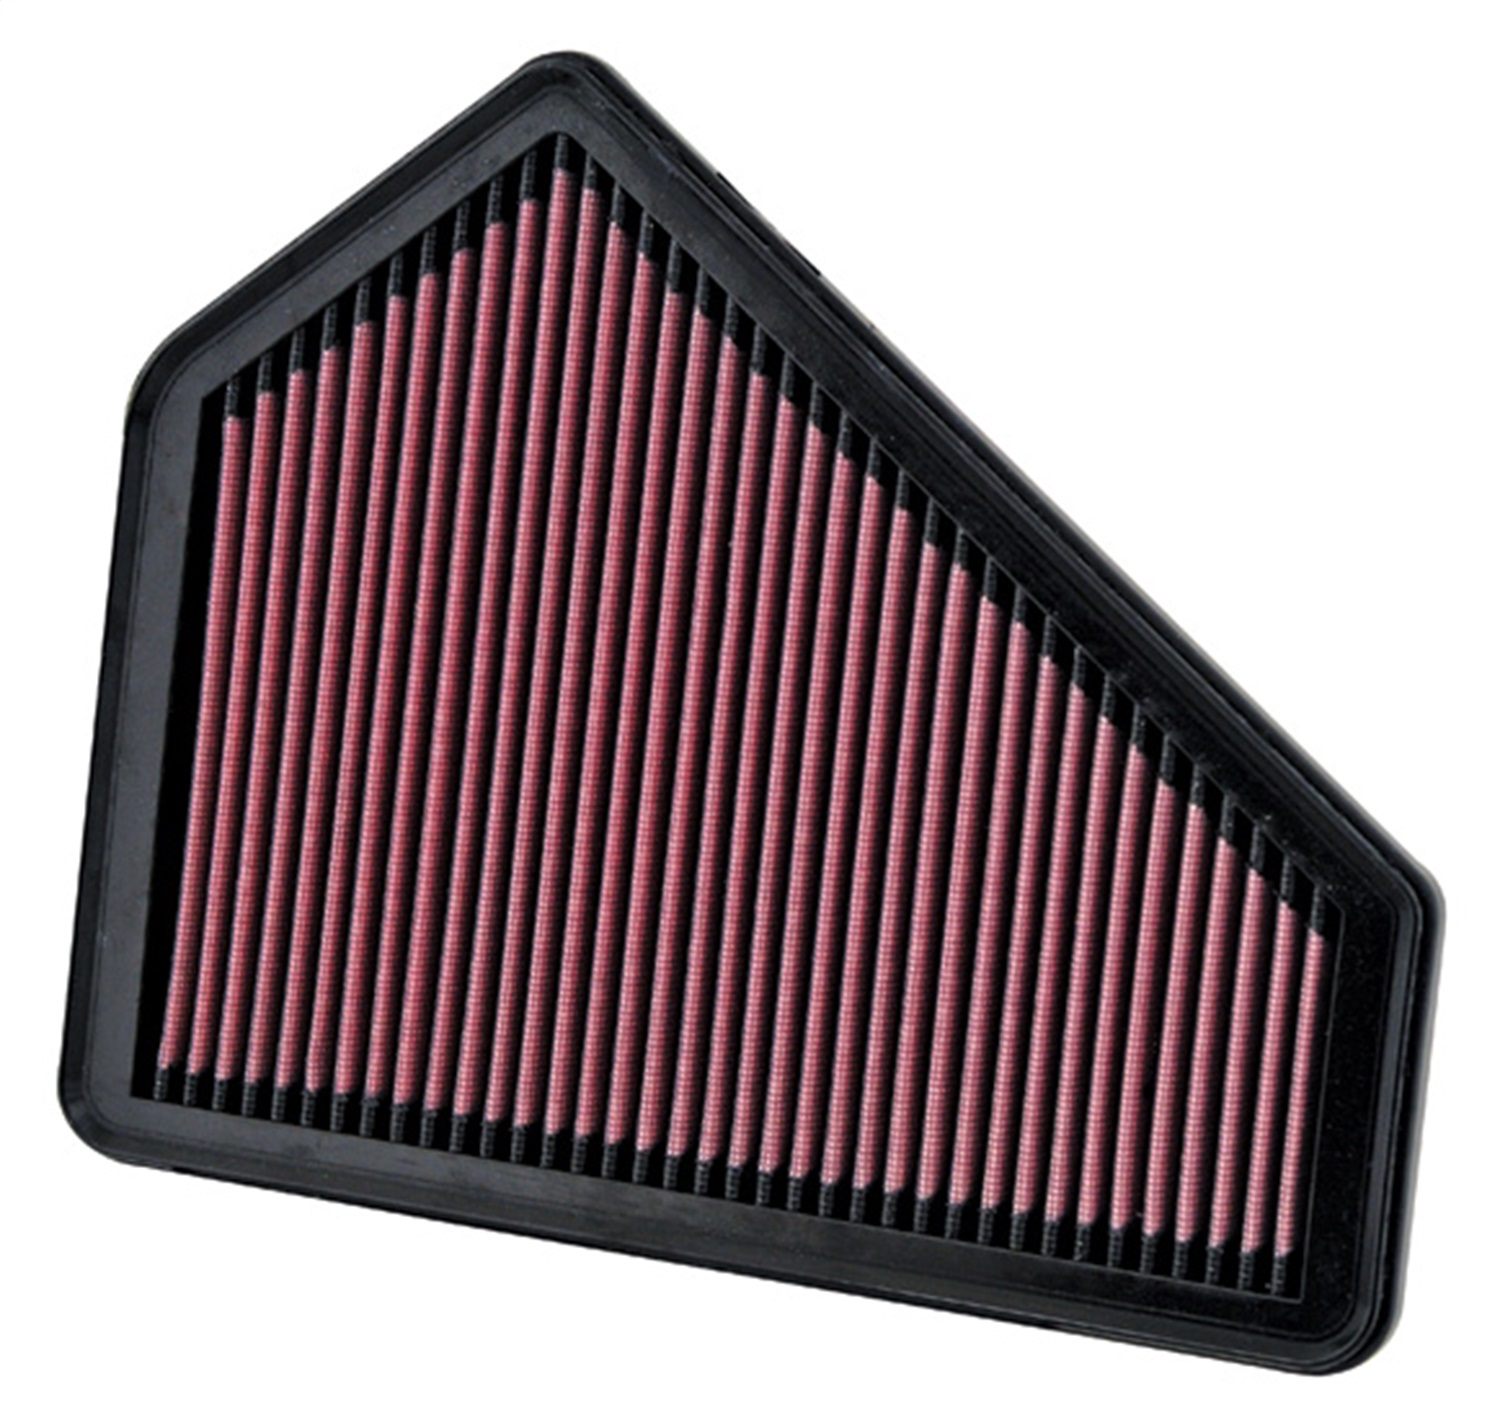 K&N Filters 33-2411 Air Filter Fits 08-15 CTS 33-2411